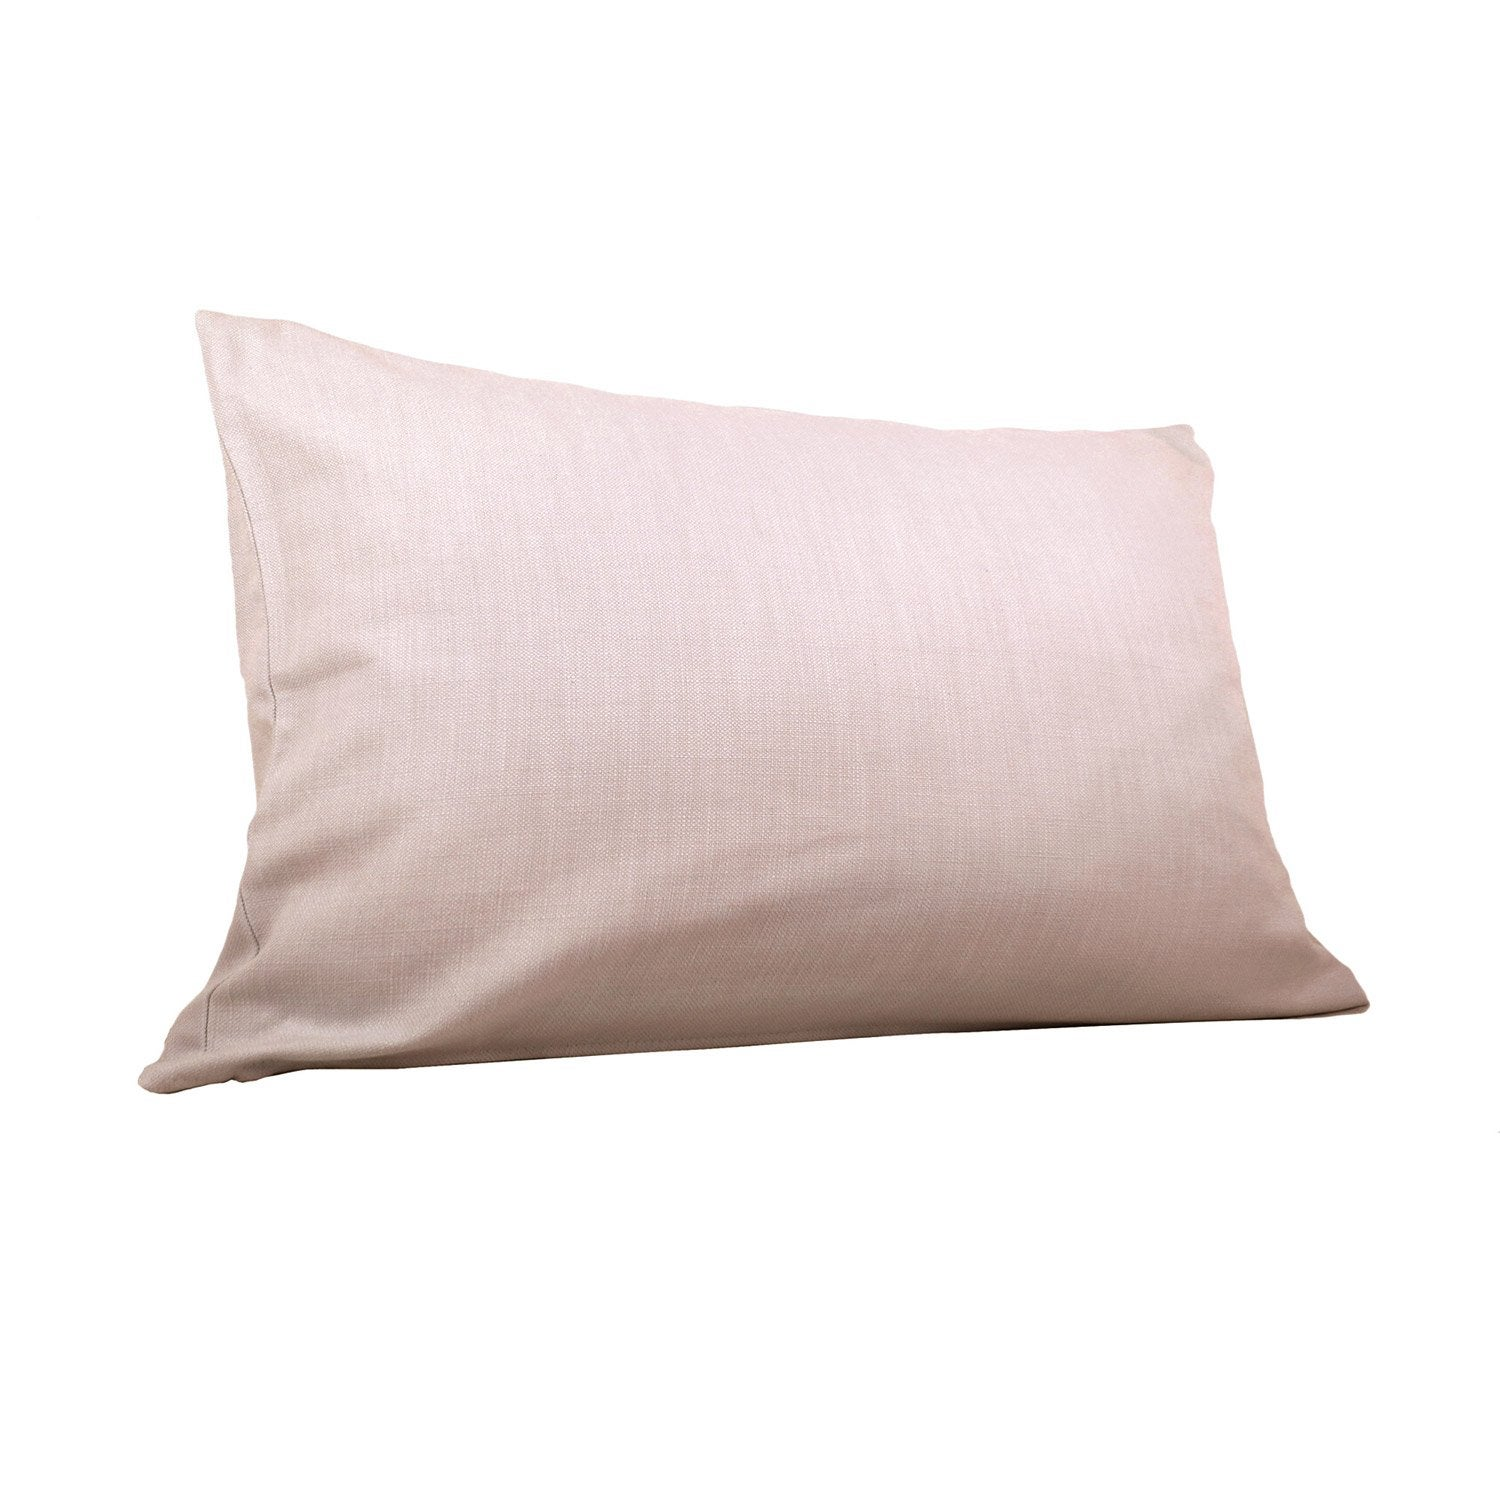 Coussin Savanna, rose blush l.60 x H.40 cm